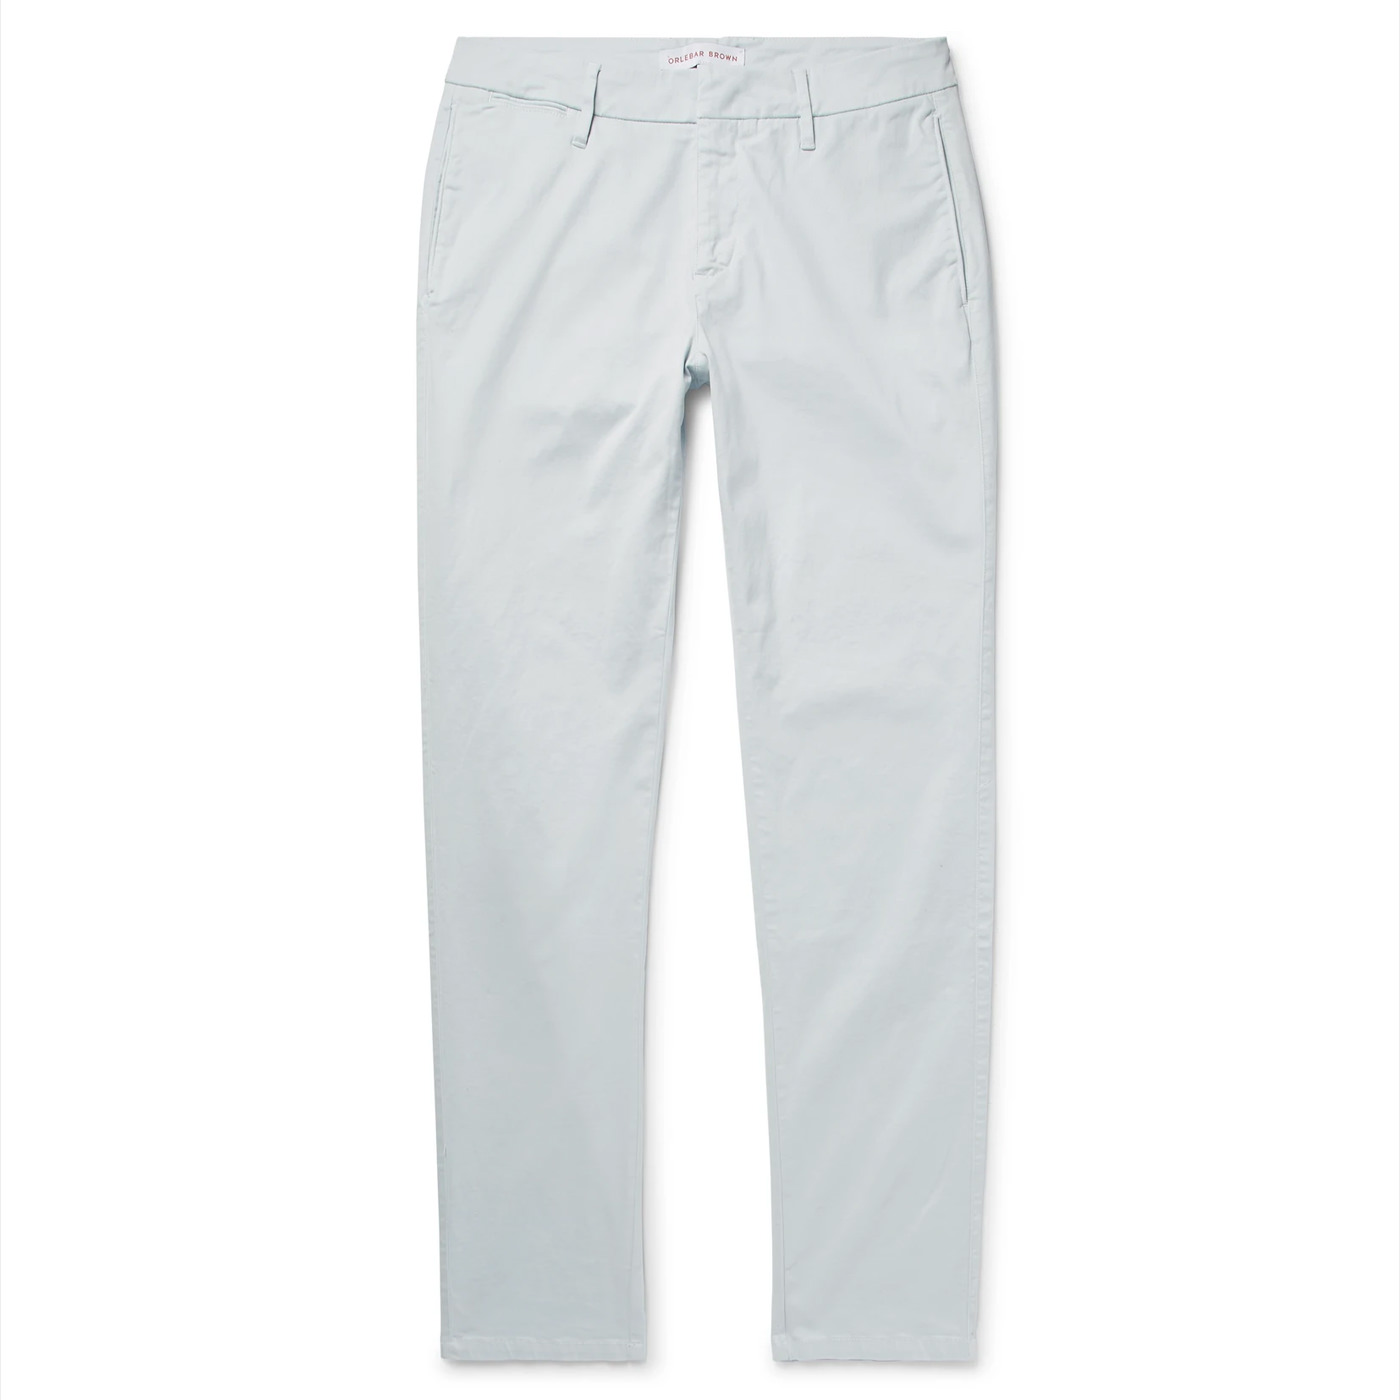 Style Mr Porter Pantalon Orlebar Brown Chinos Light Gray